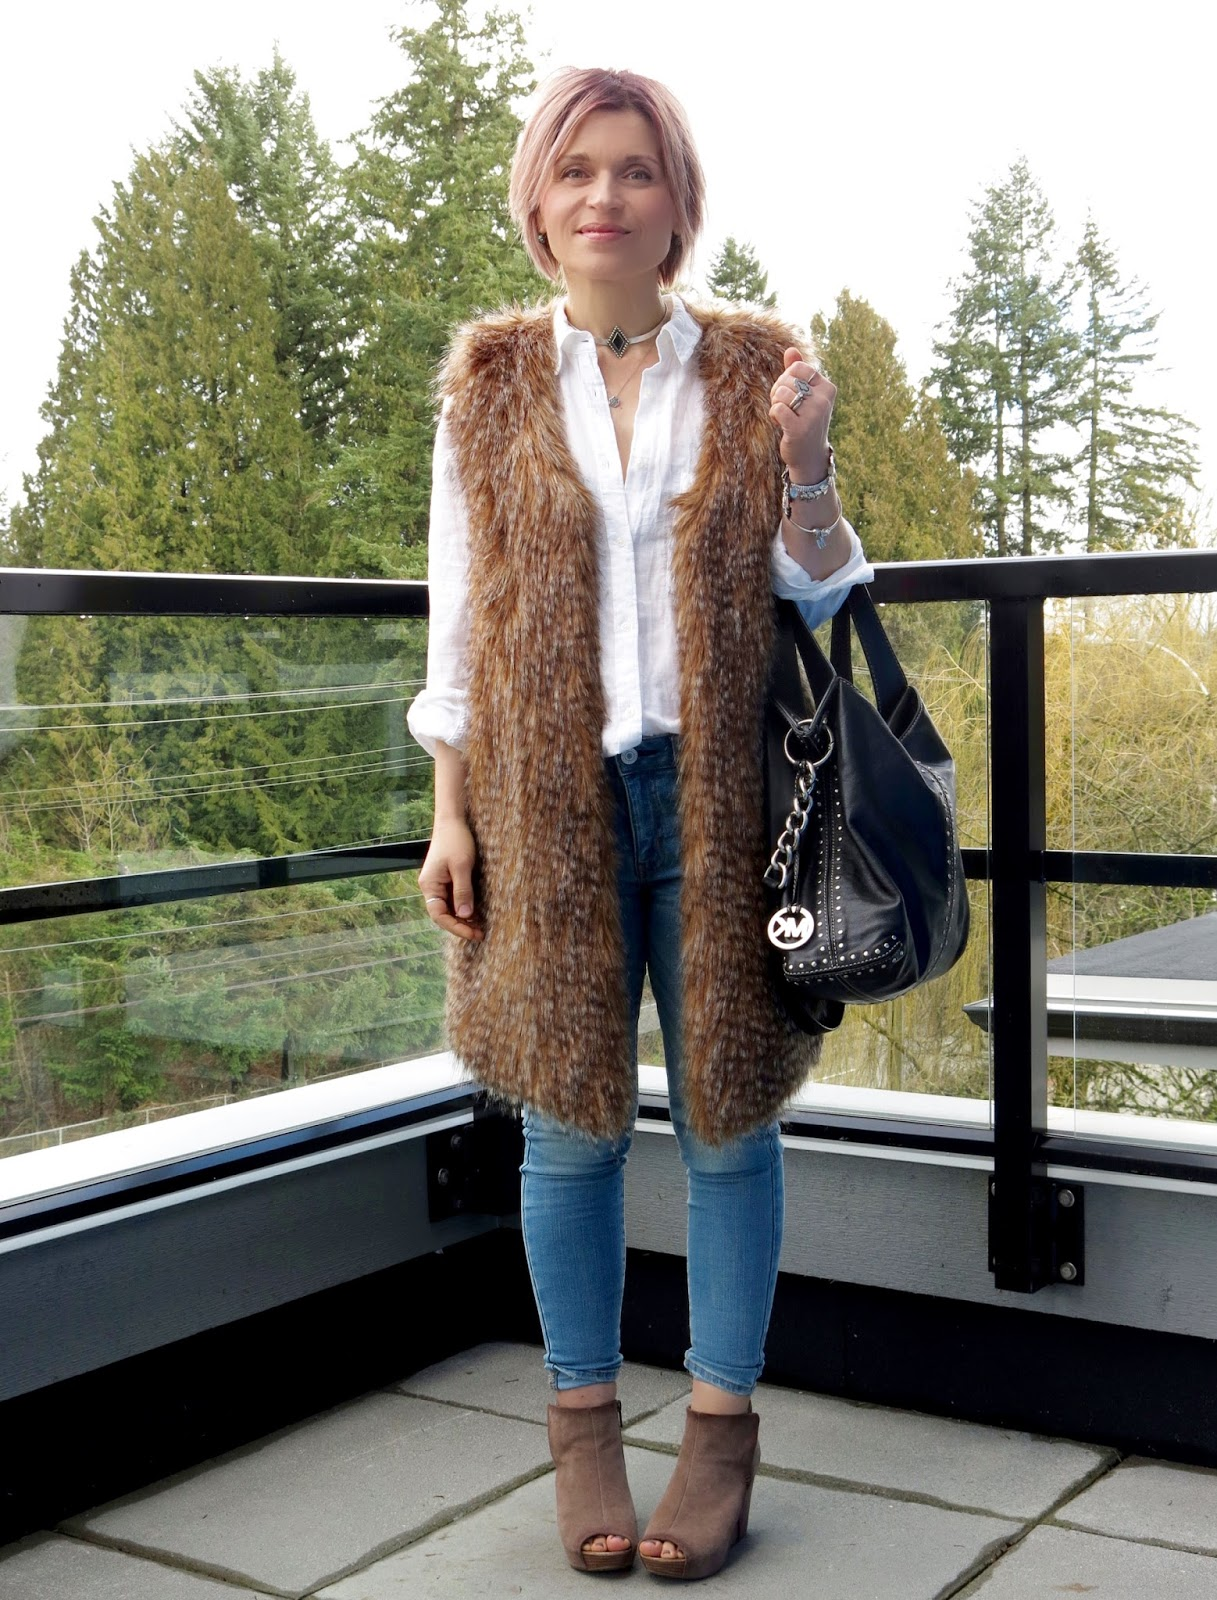 styling a white shirt and skinny jeans with a long, faux-fur vest and open-toe wedge booties